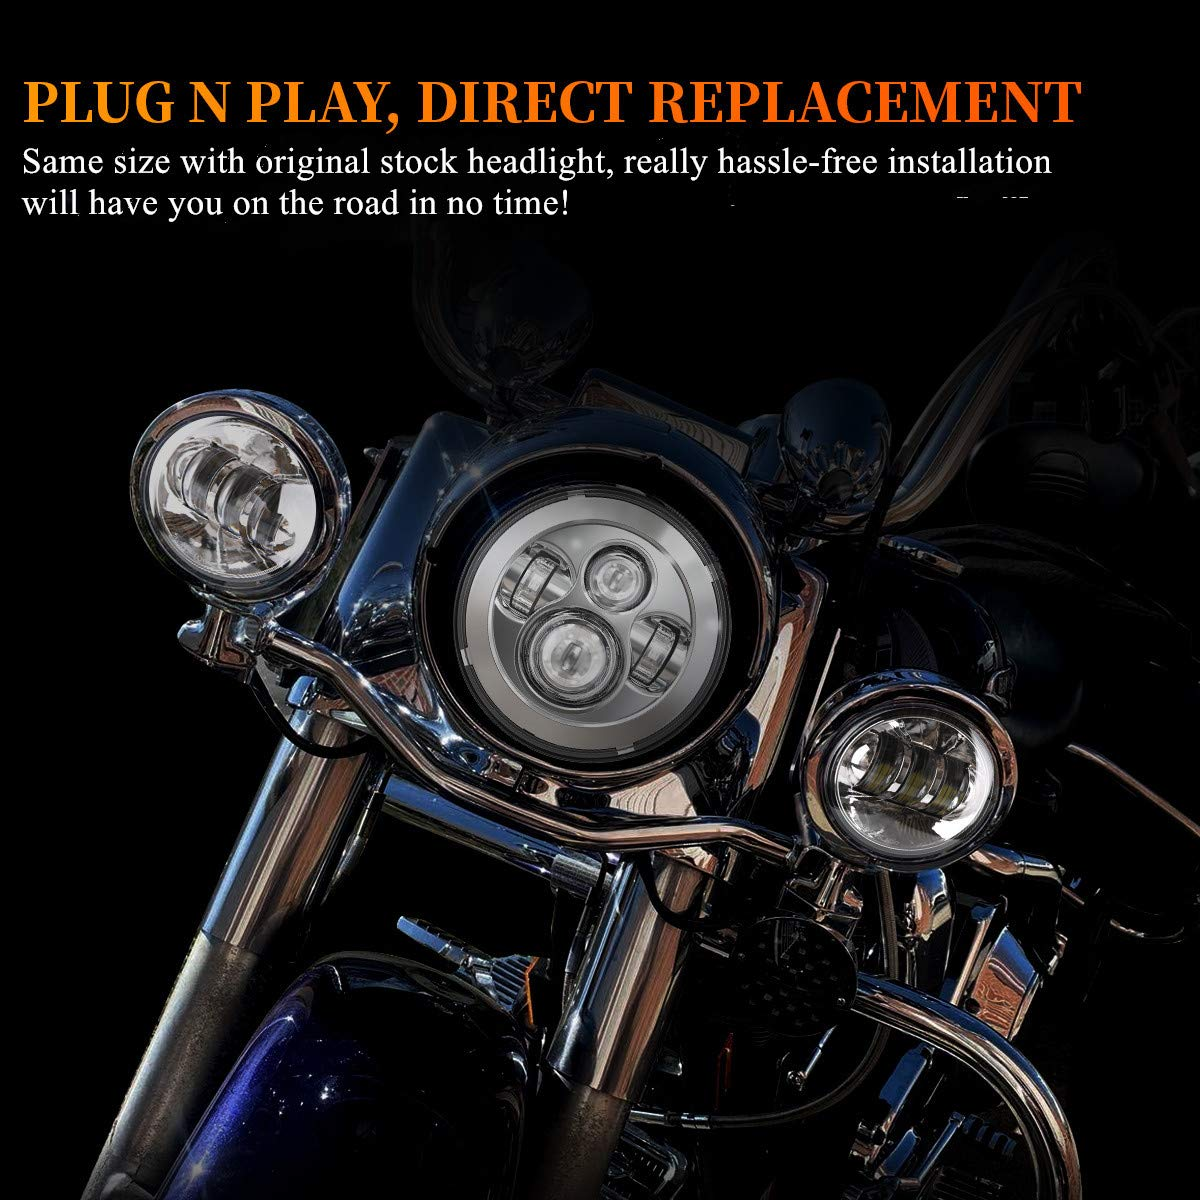 DOT 7 Inch Motorcycle LED Headlight for Harley Davidson Electra Glide Street Glide Fat Boy Road King Heritage Softail Switchback Headlamp Chrome